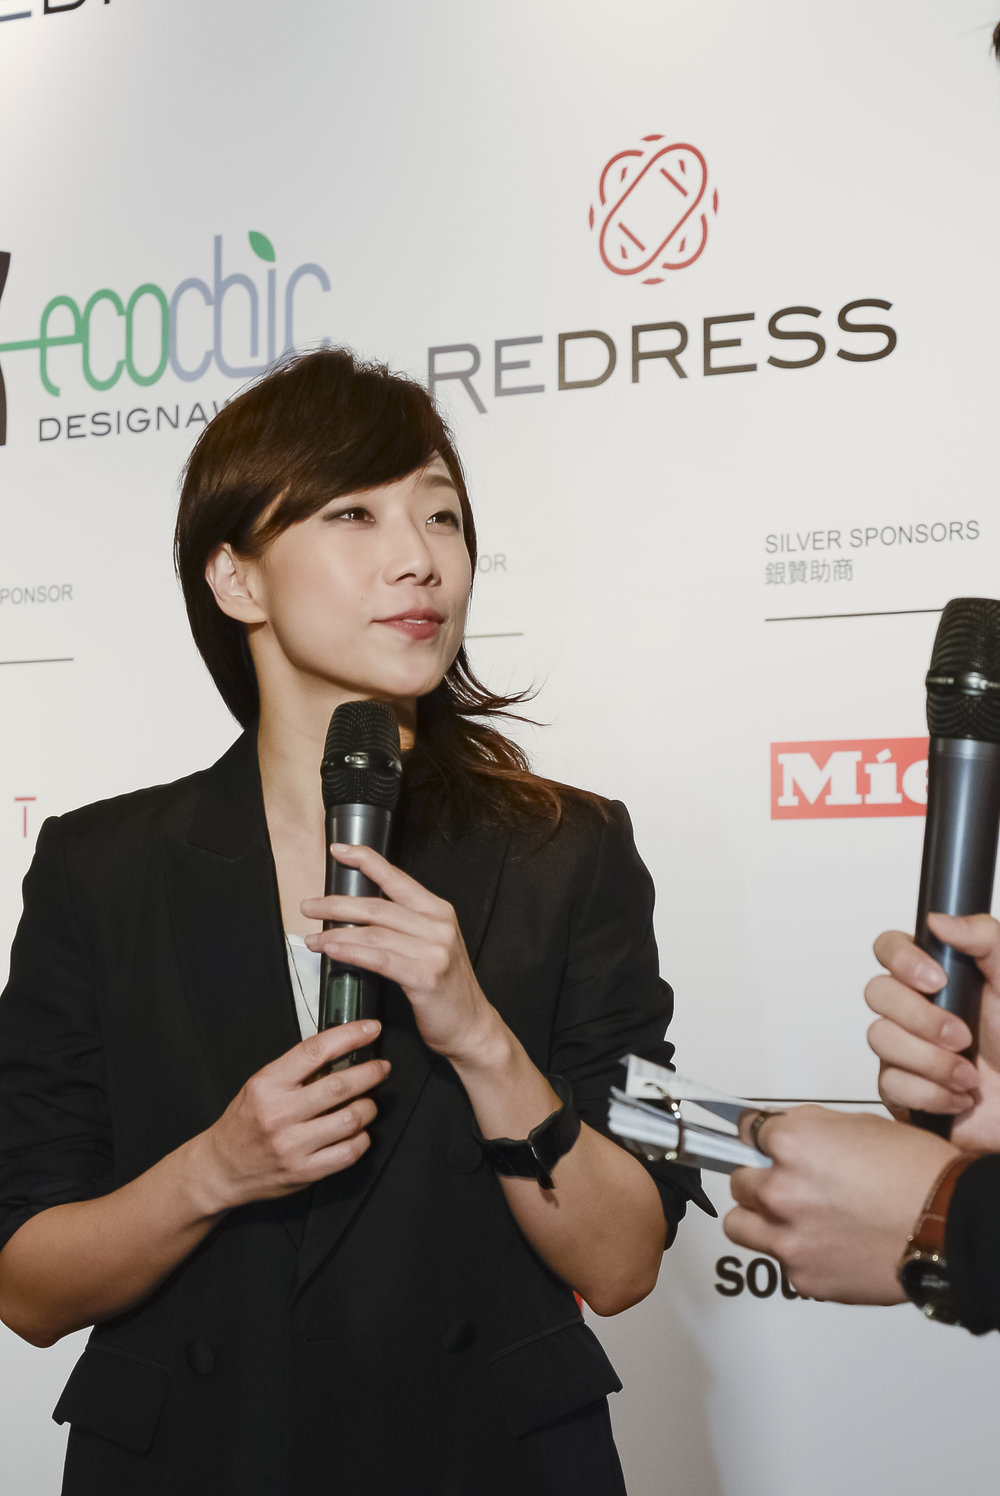 Hong Kong singer Sandy Lam attends the Redress Design Award 2013 Hong Kong launch event